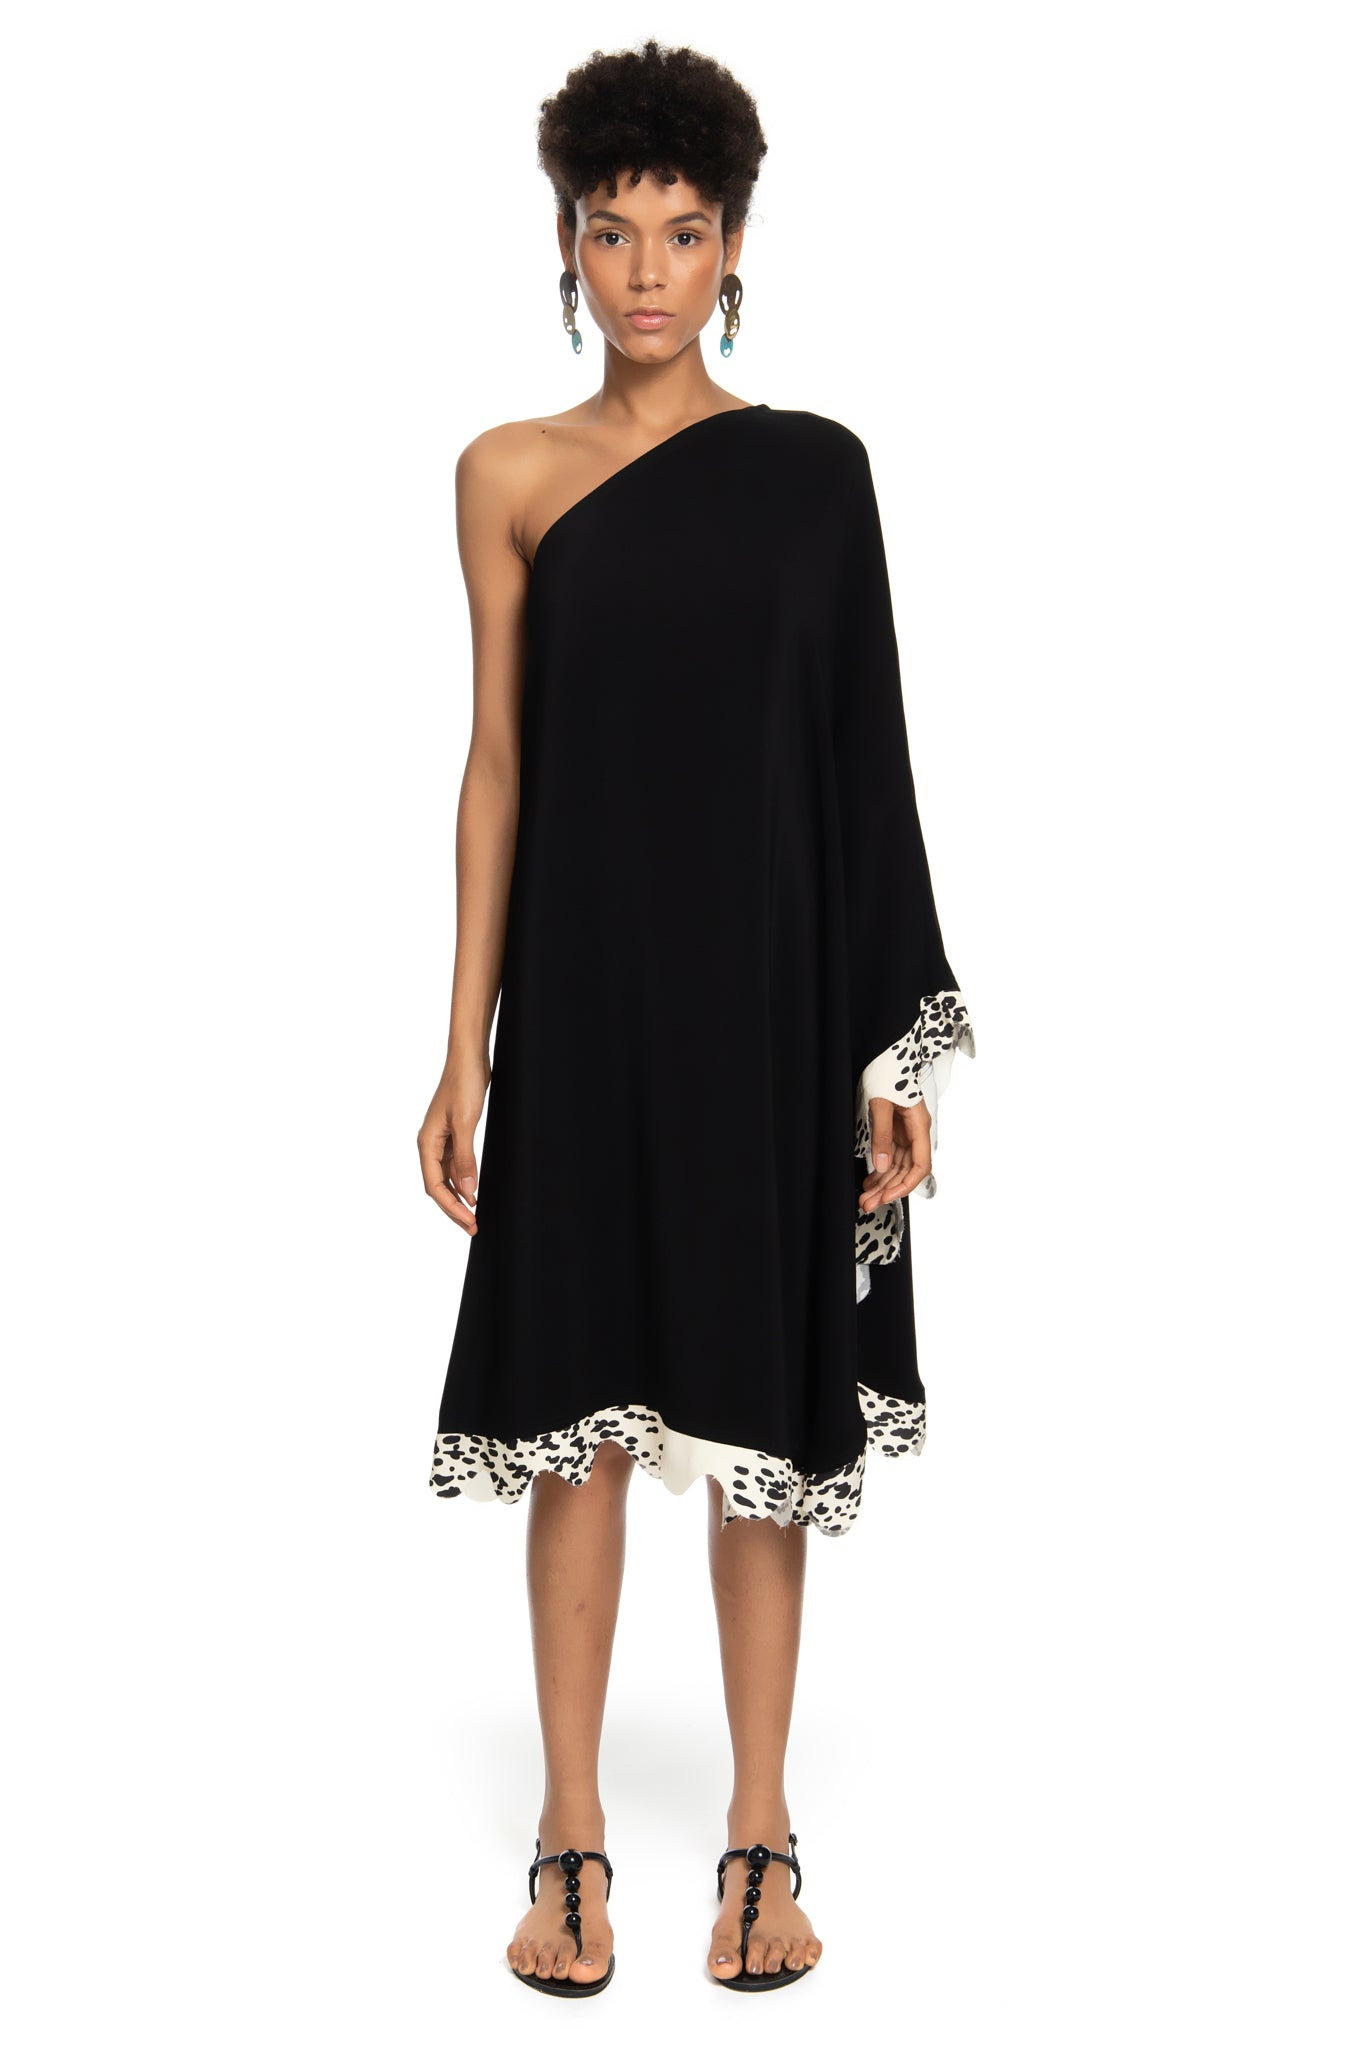 BLACK WAVES SHOULDER DRESS